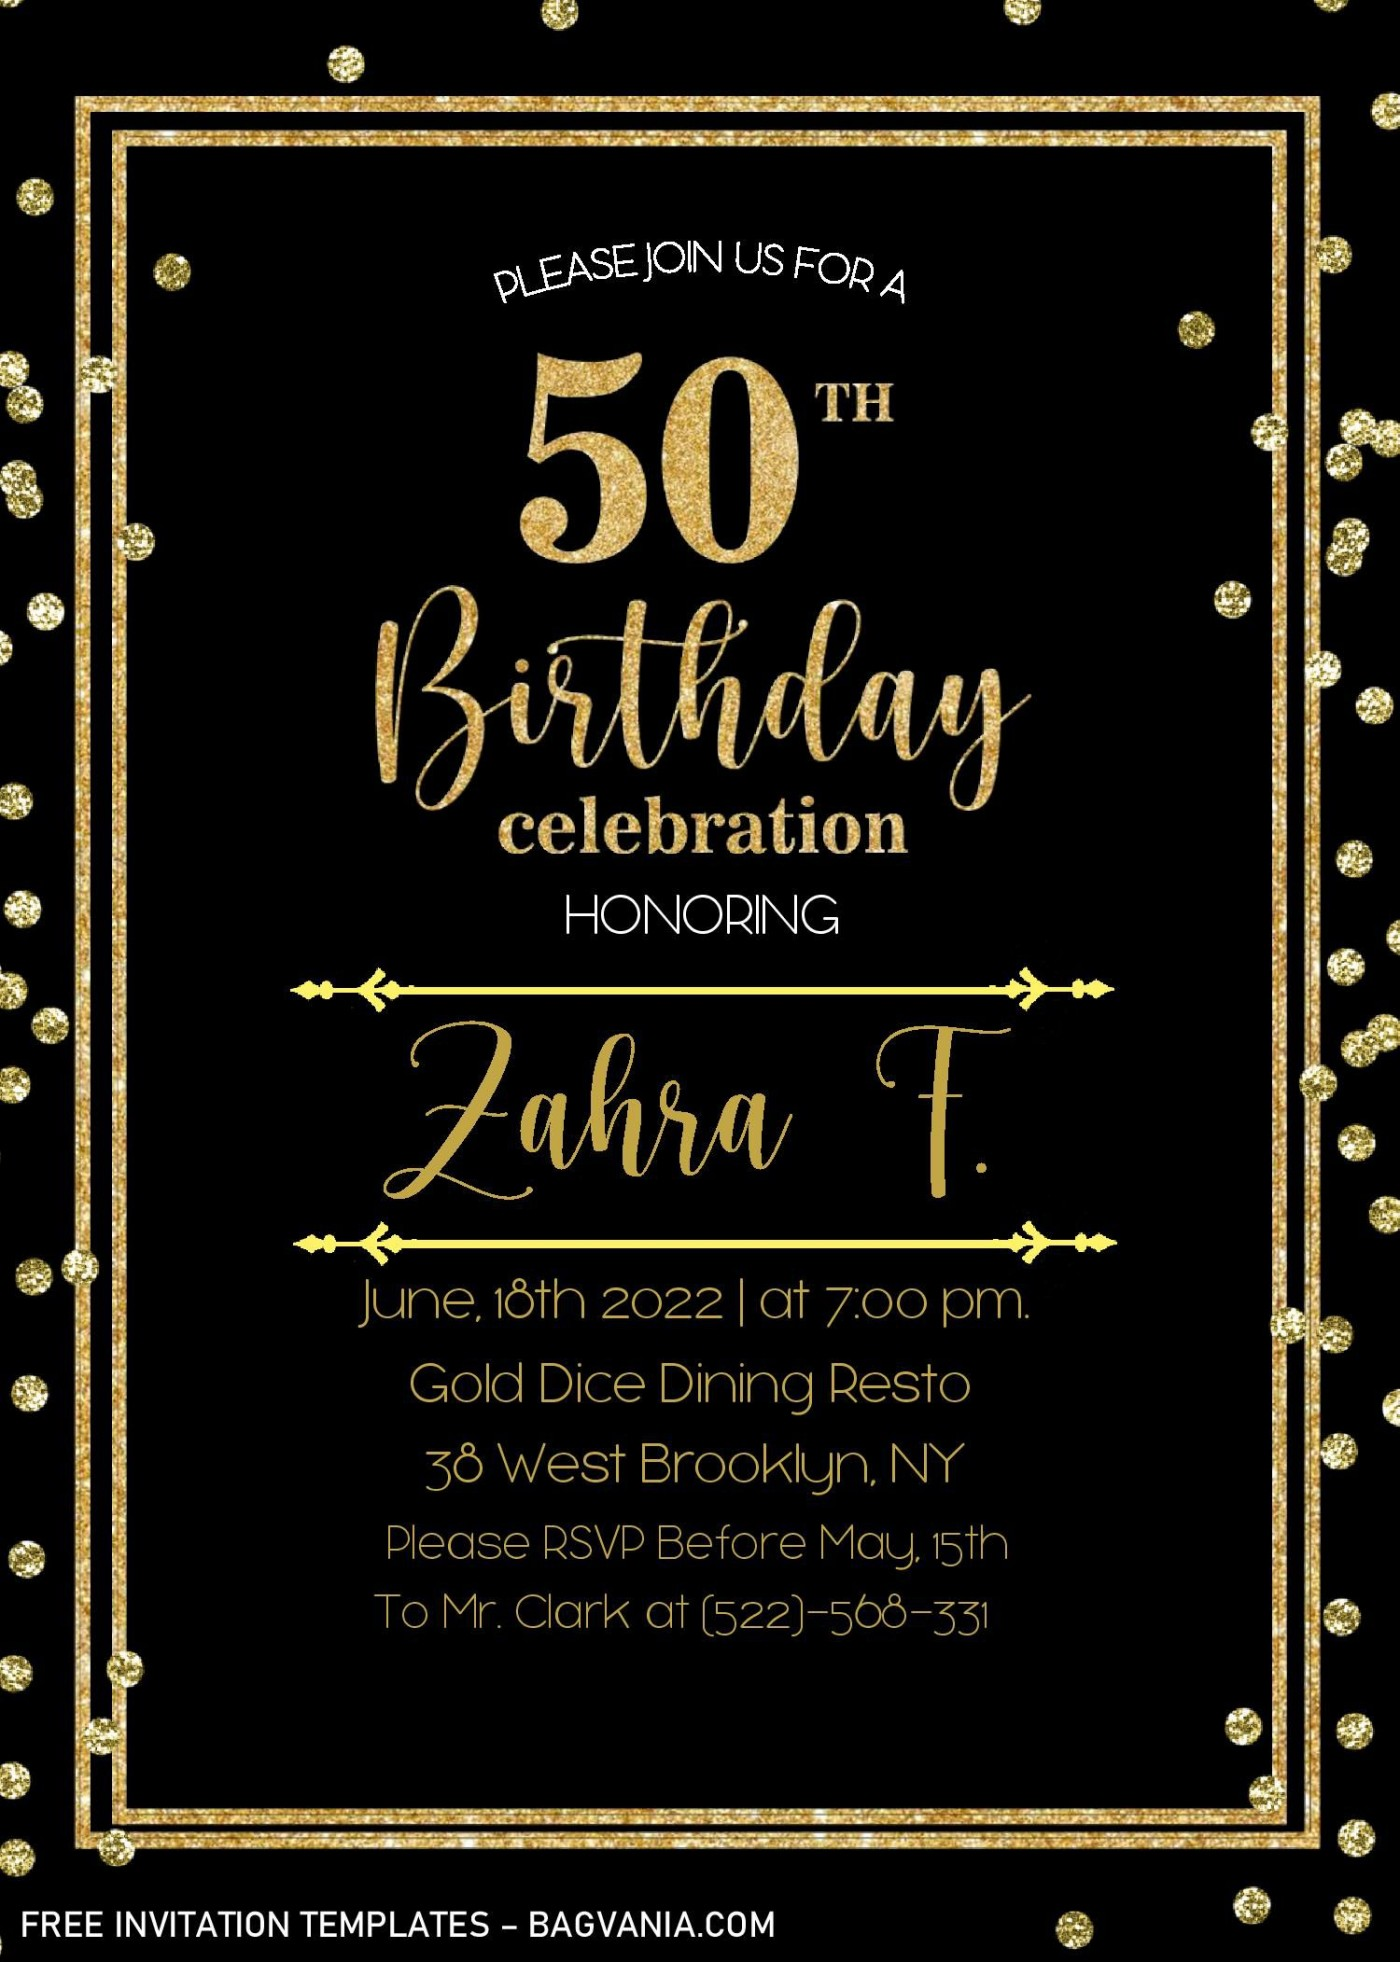 002 Striking Microsoft Word 50th Birthday Invitation Template Image  Editable Wedding Anniversary1400